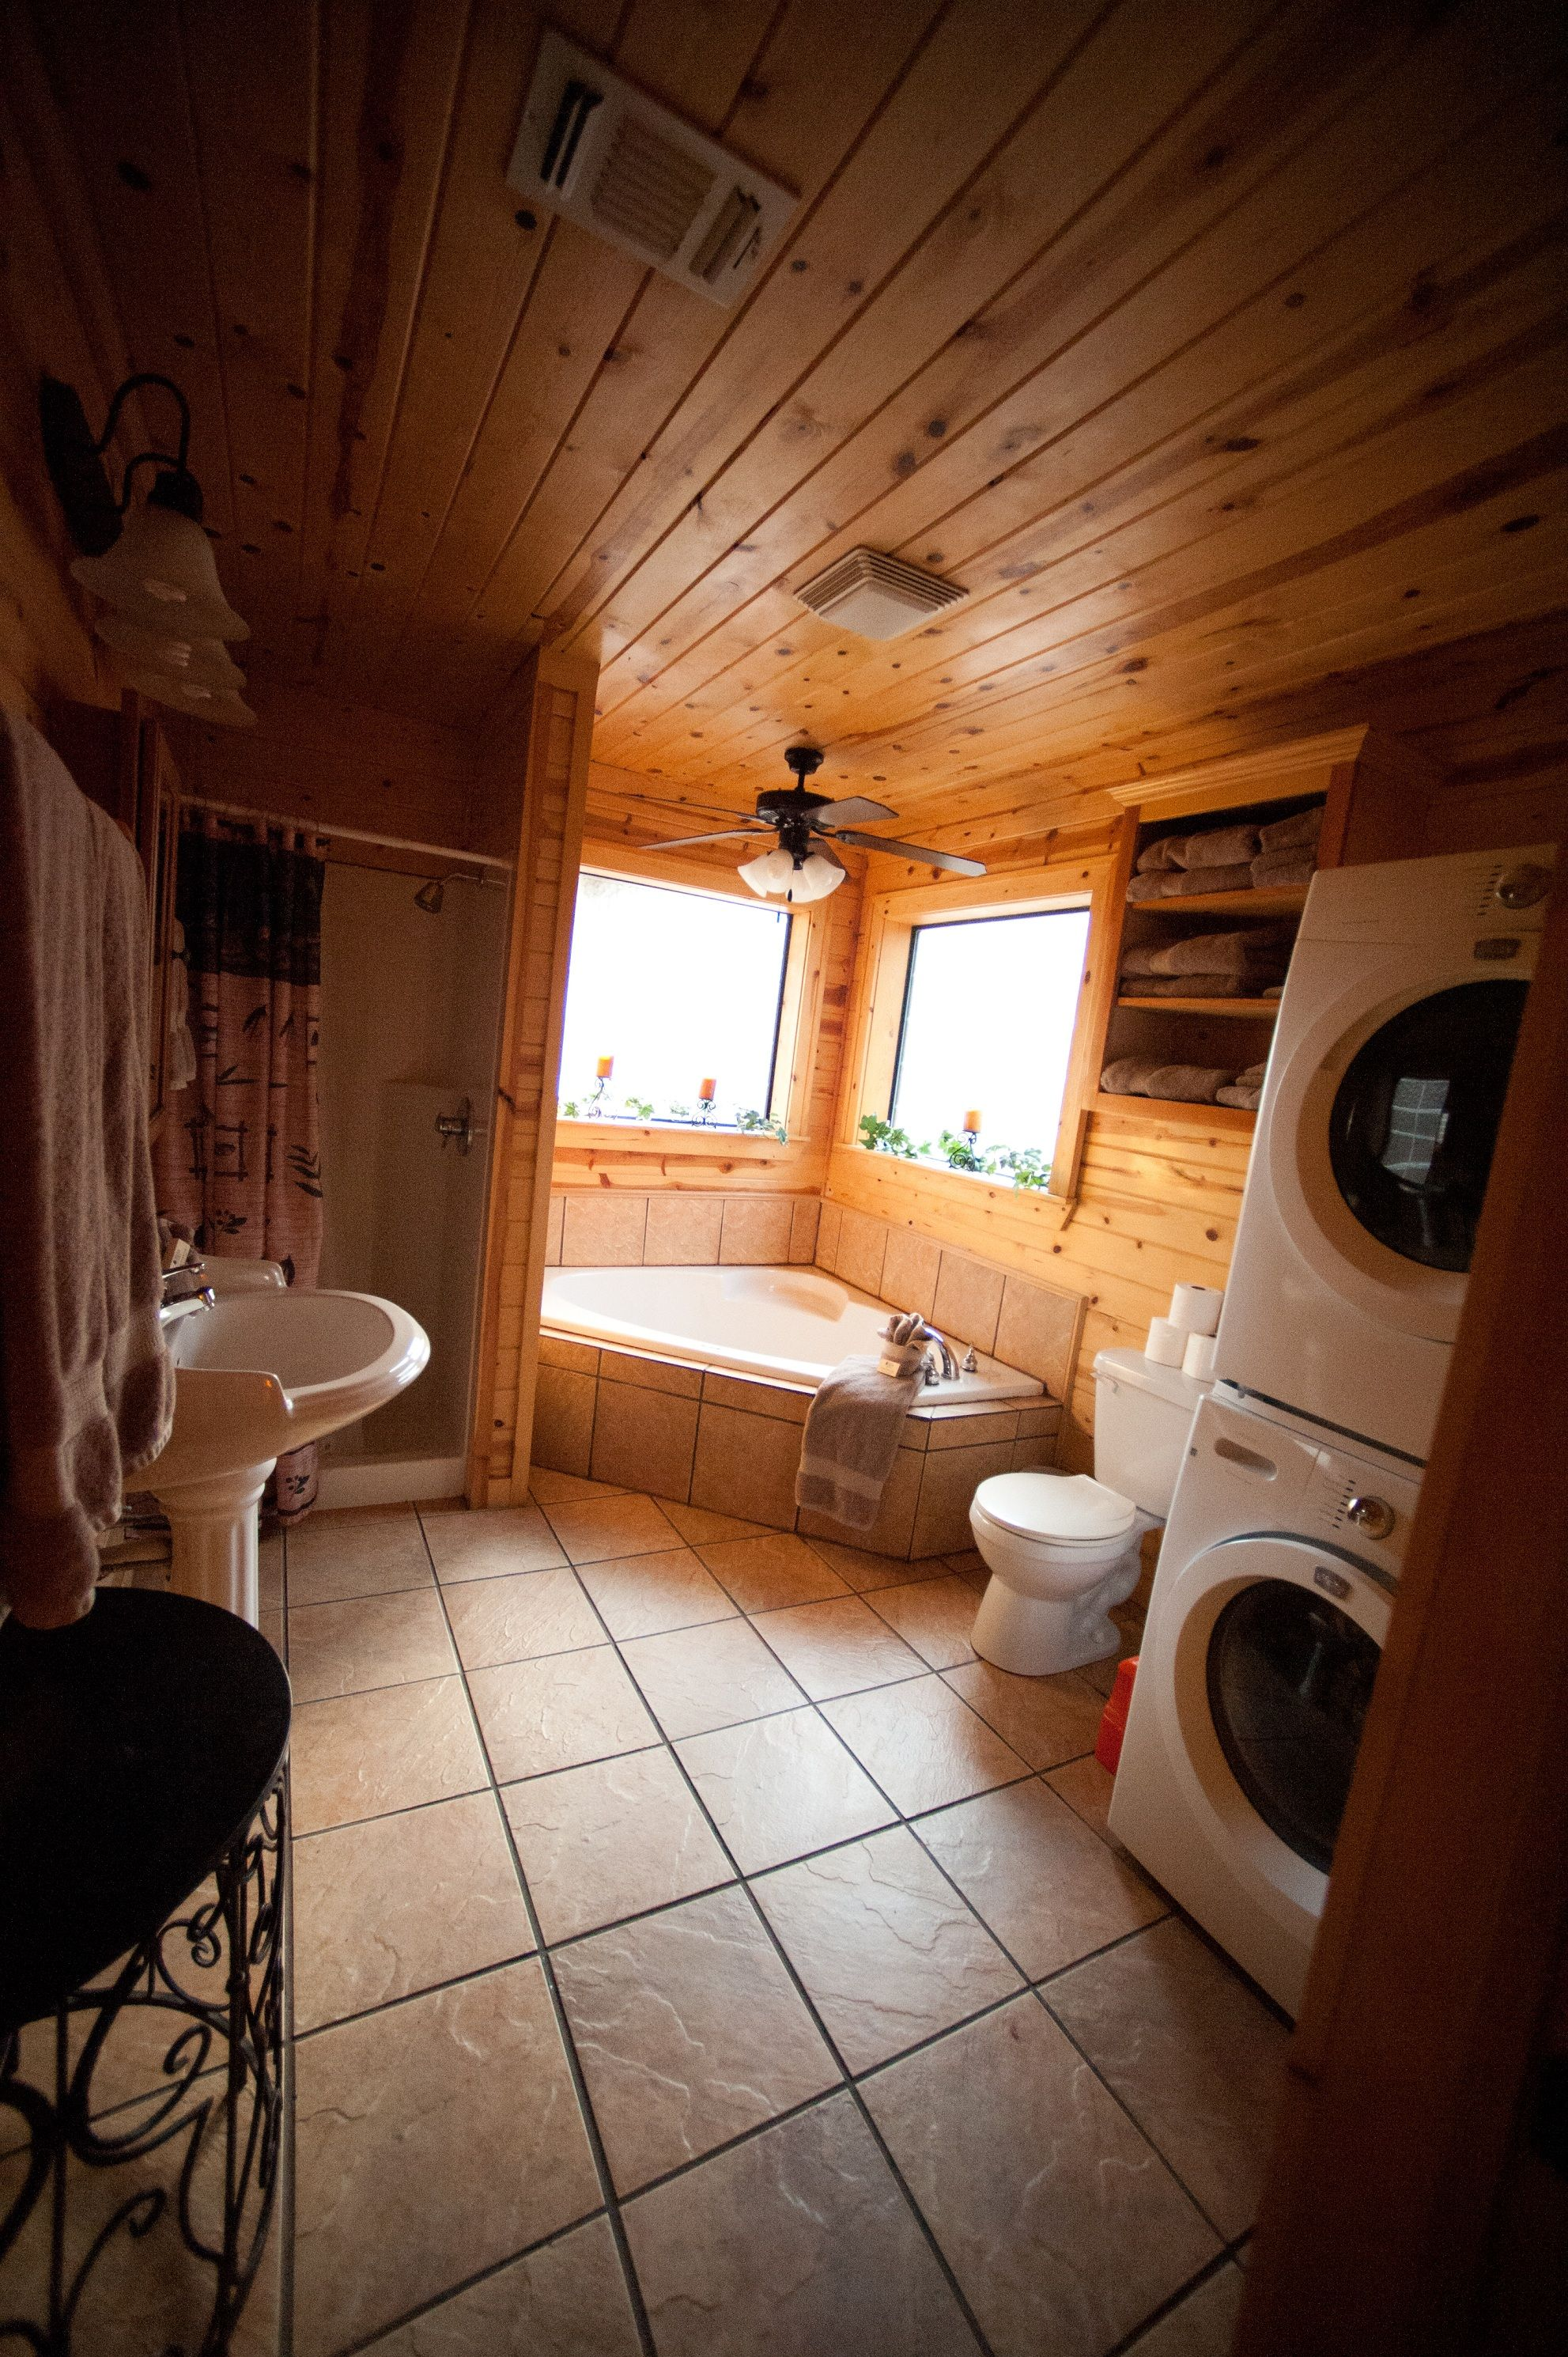 rental ca rentals accommodations cabin garden wild cabins cottage big jacuzzi rose bear with